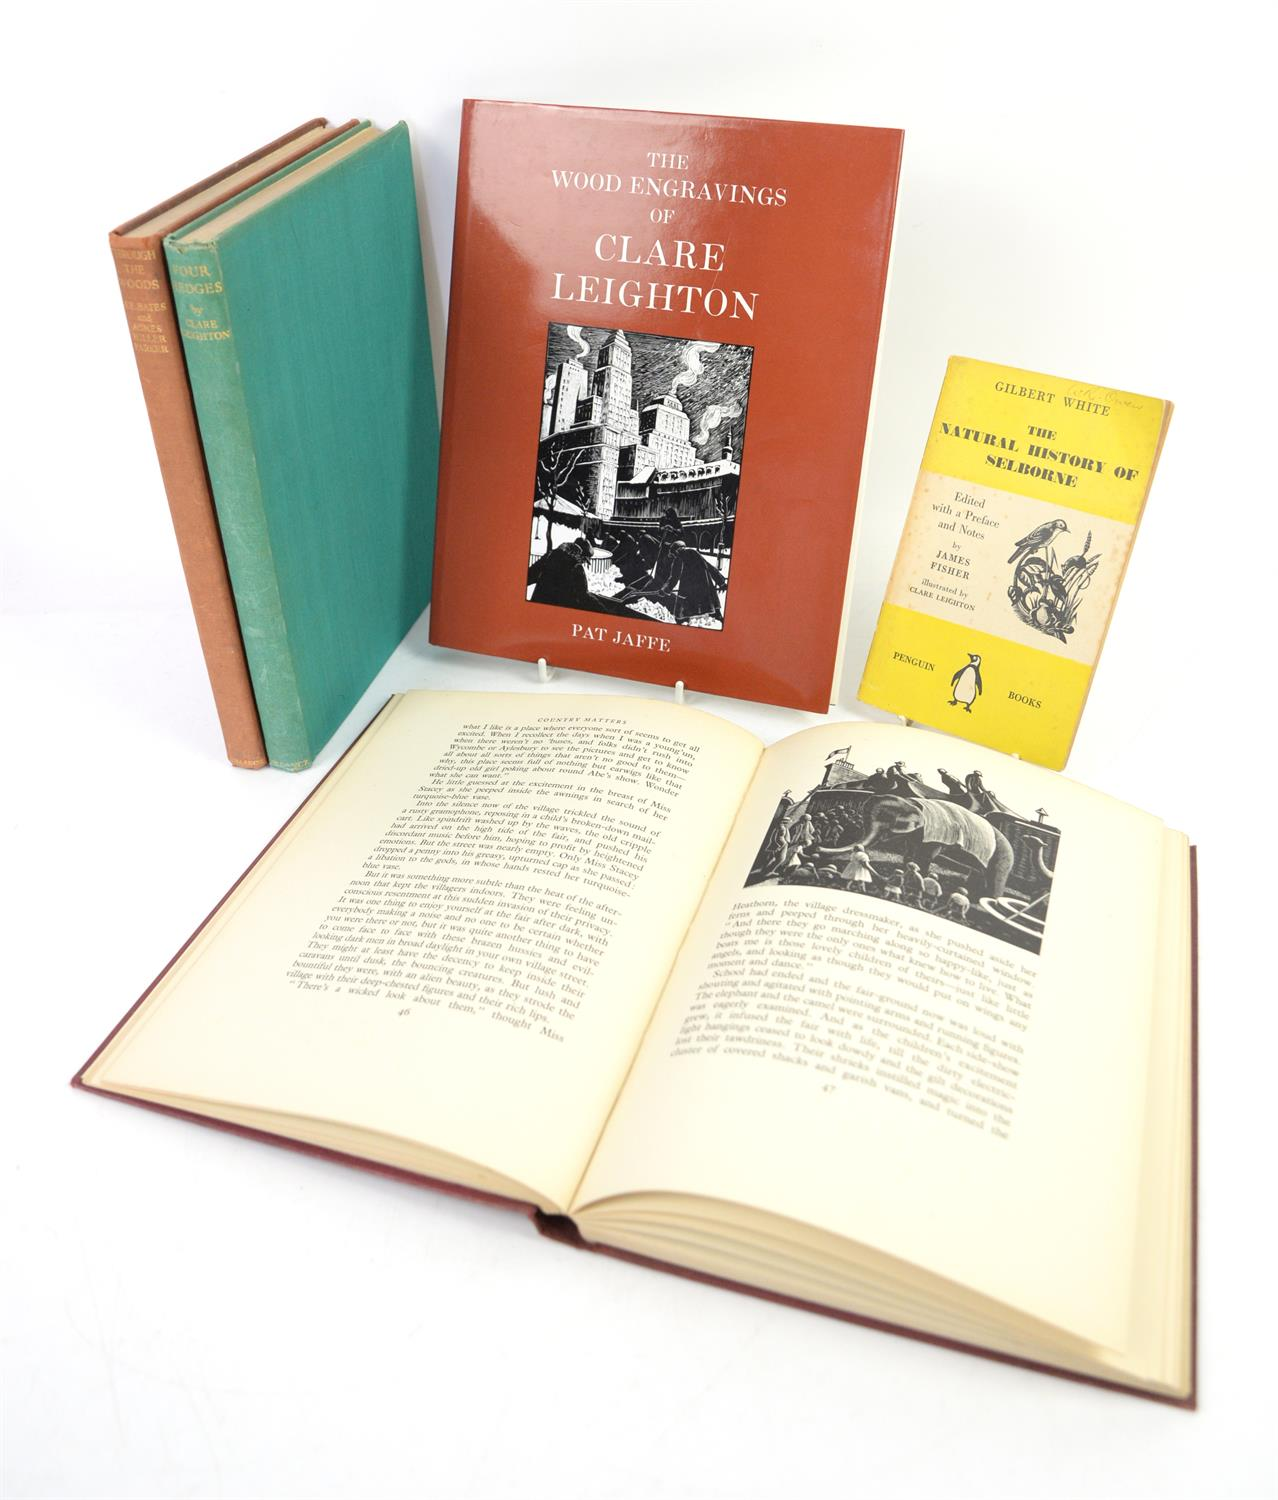 A collection of books with woodcut illustrations by Clare Leighton, to include Four Hedges 1936,